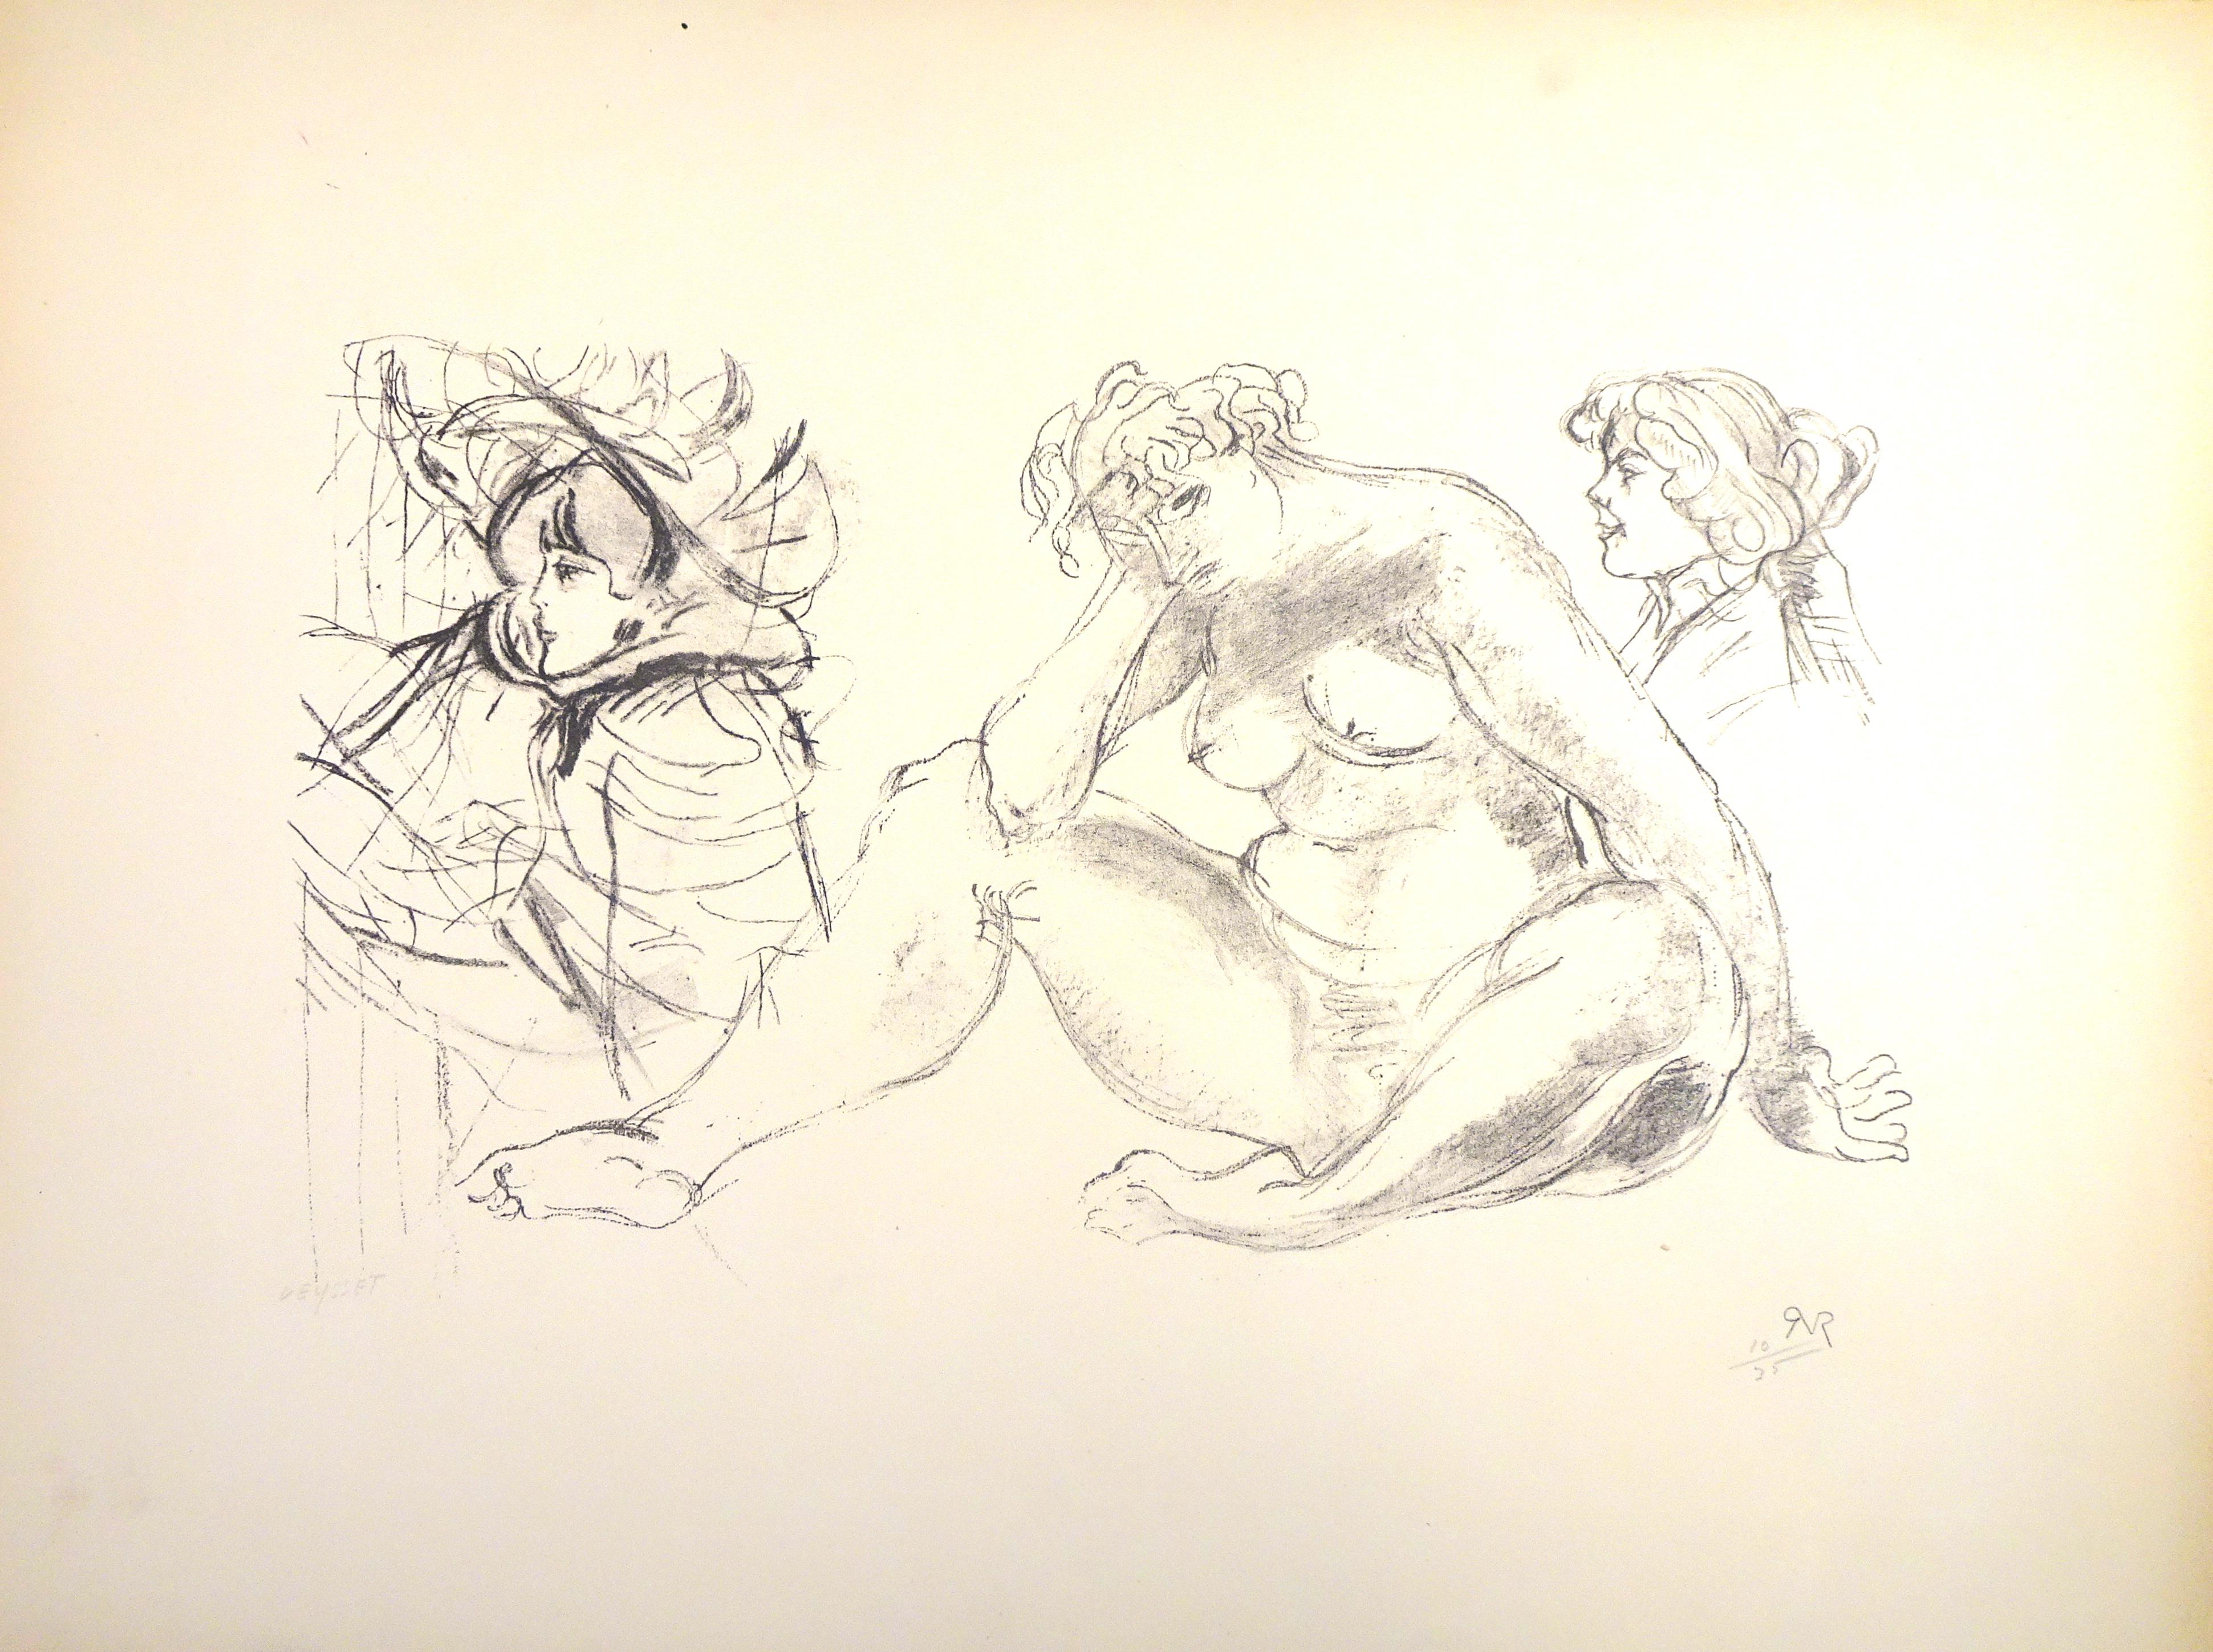 Female Nude with Portraits  - Original Lithograph by Raymond Veysset